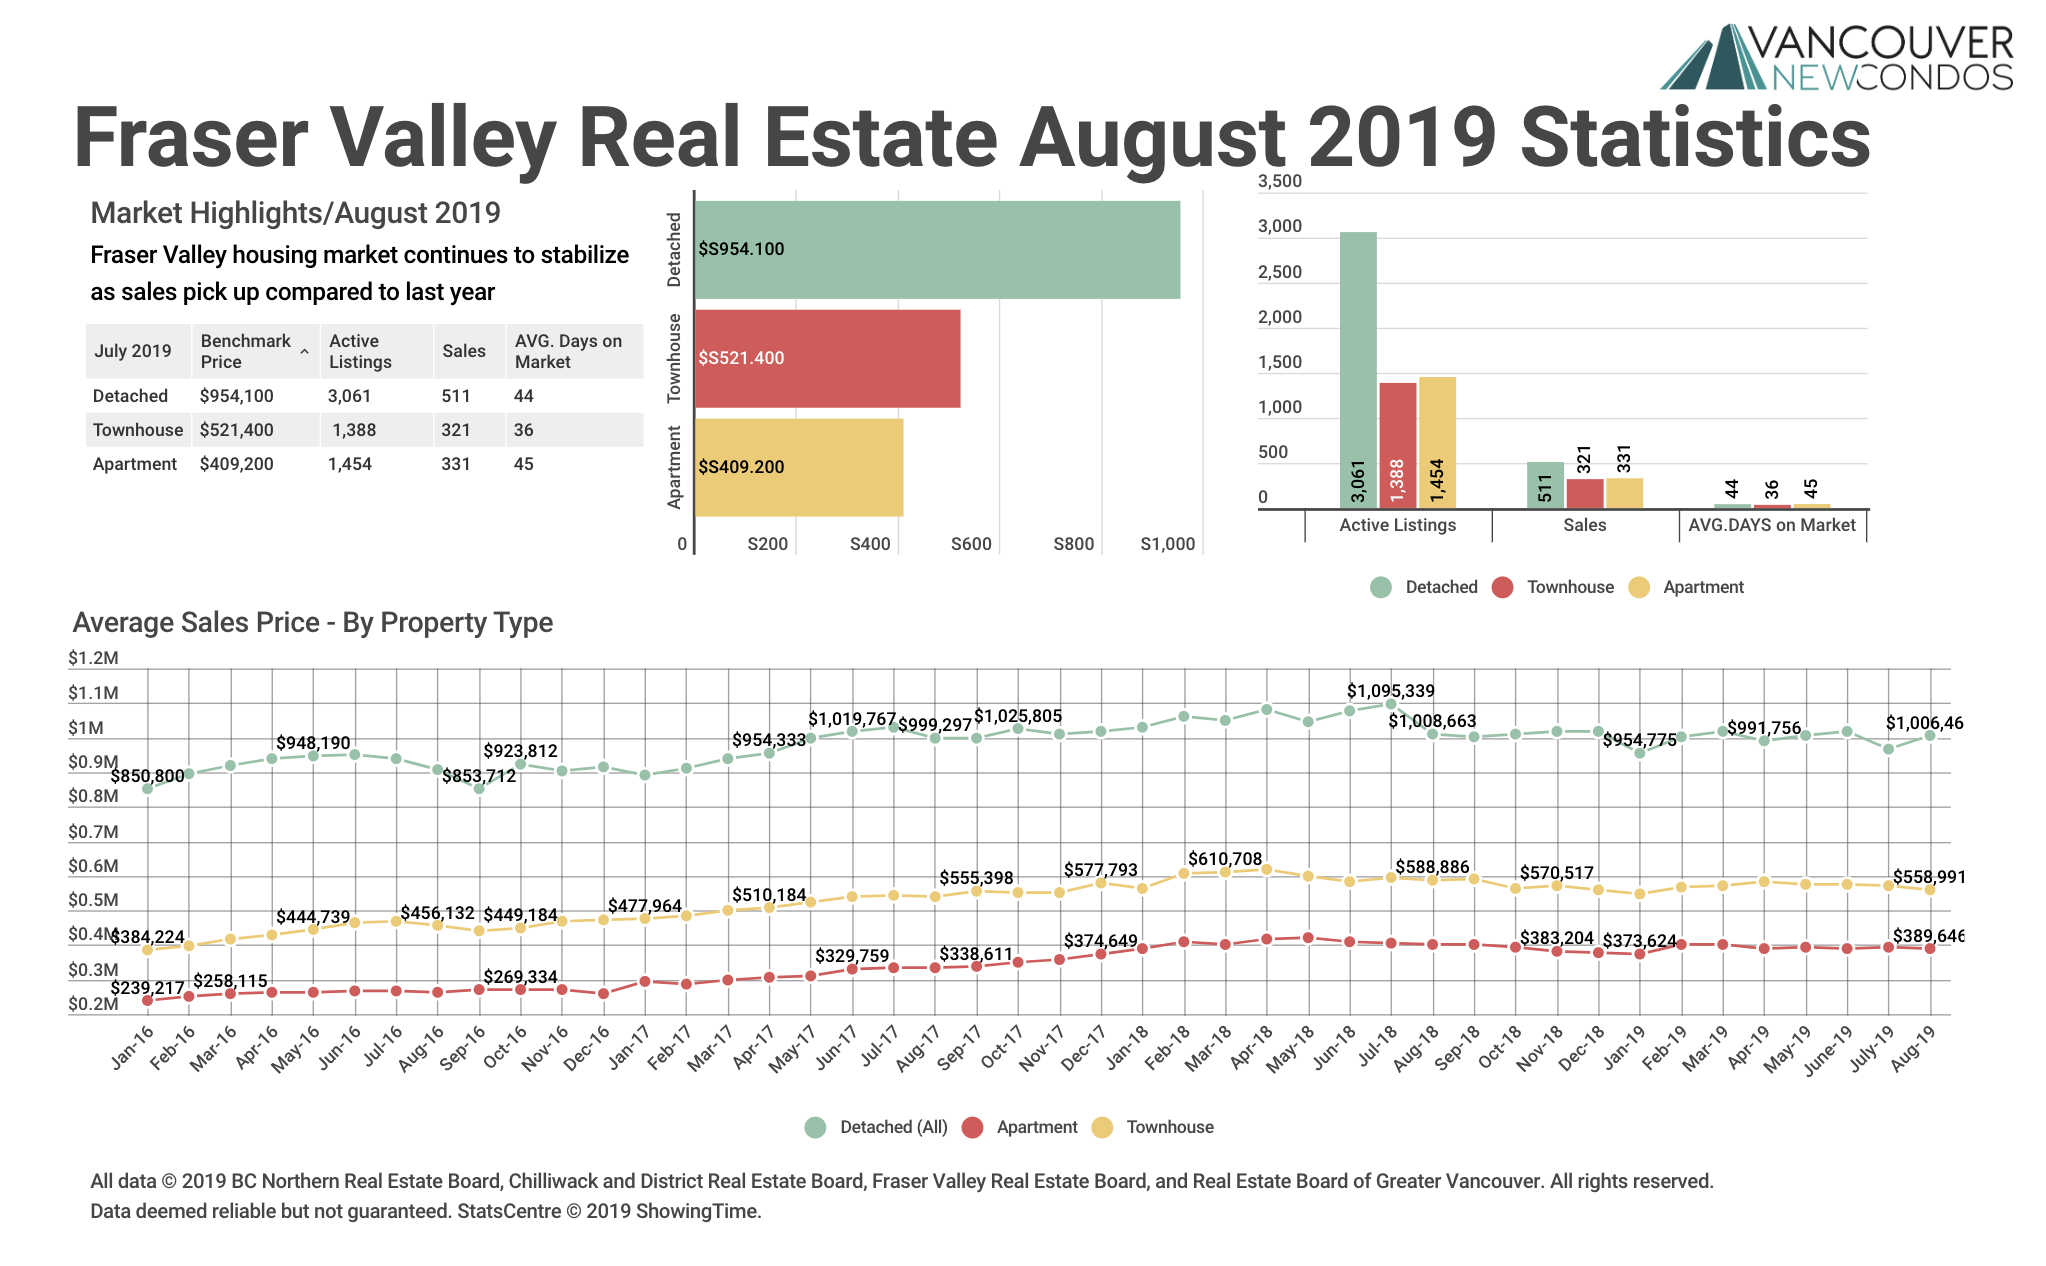 Fraser Valley Real Estate Board August 2019 Statistics graph